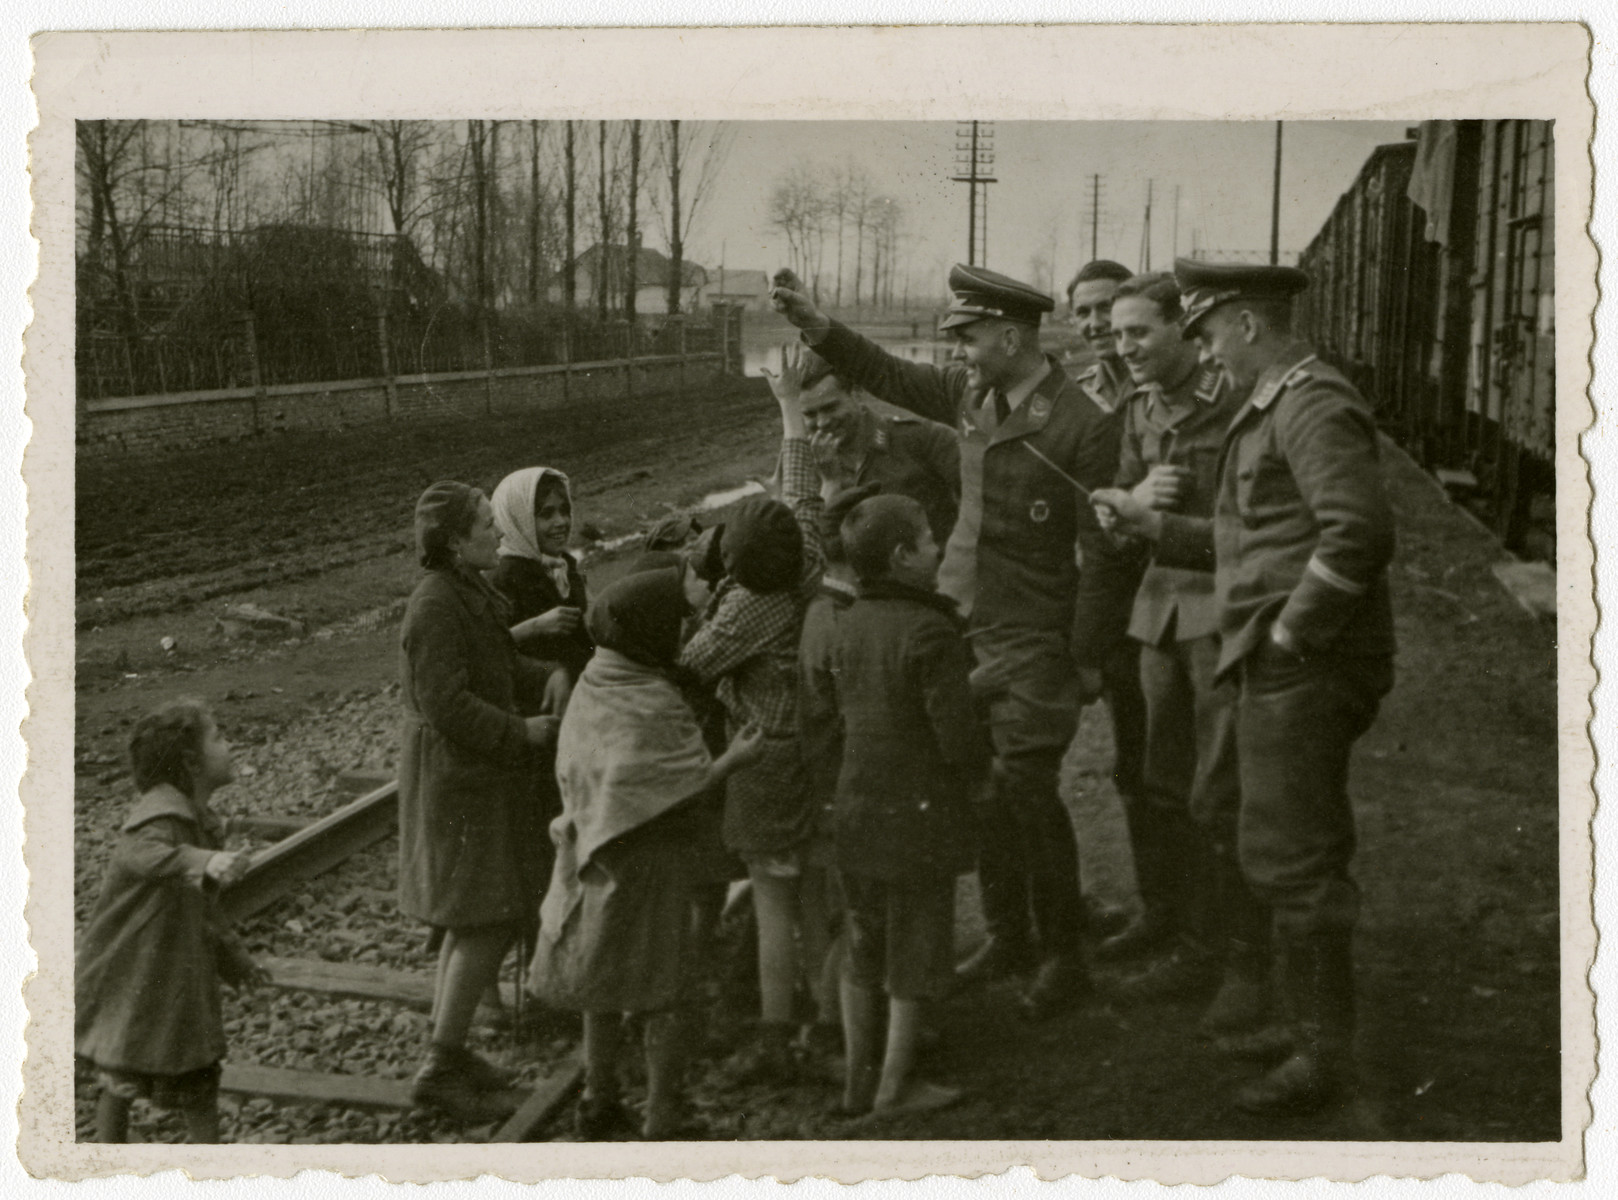 Members of the German Luftwaffe engage with local children by the tracks of an unidentified railway.  This image is one of twenty-six photographs and contained in an album found by Jacob Igra in an apartment in Sosnowiec after the war. Many of the photographs are believed to have been taken by a soldier with the SD-SIPO (Sicherheitspolizei) following the invasion of Poland in 1939. Additional photographs depict einsatzgruppen activities at sites throughout Nazi occupied Eastern Europe and may have been later additions to the album.